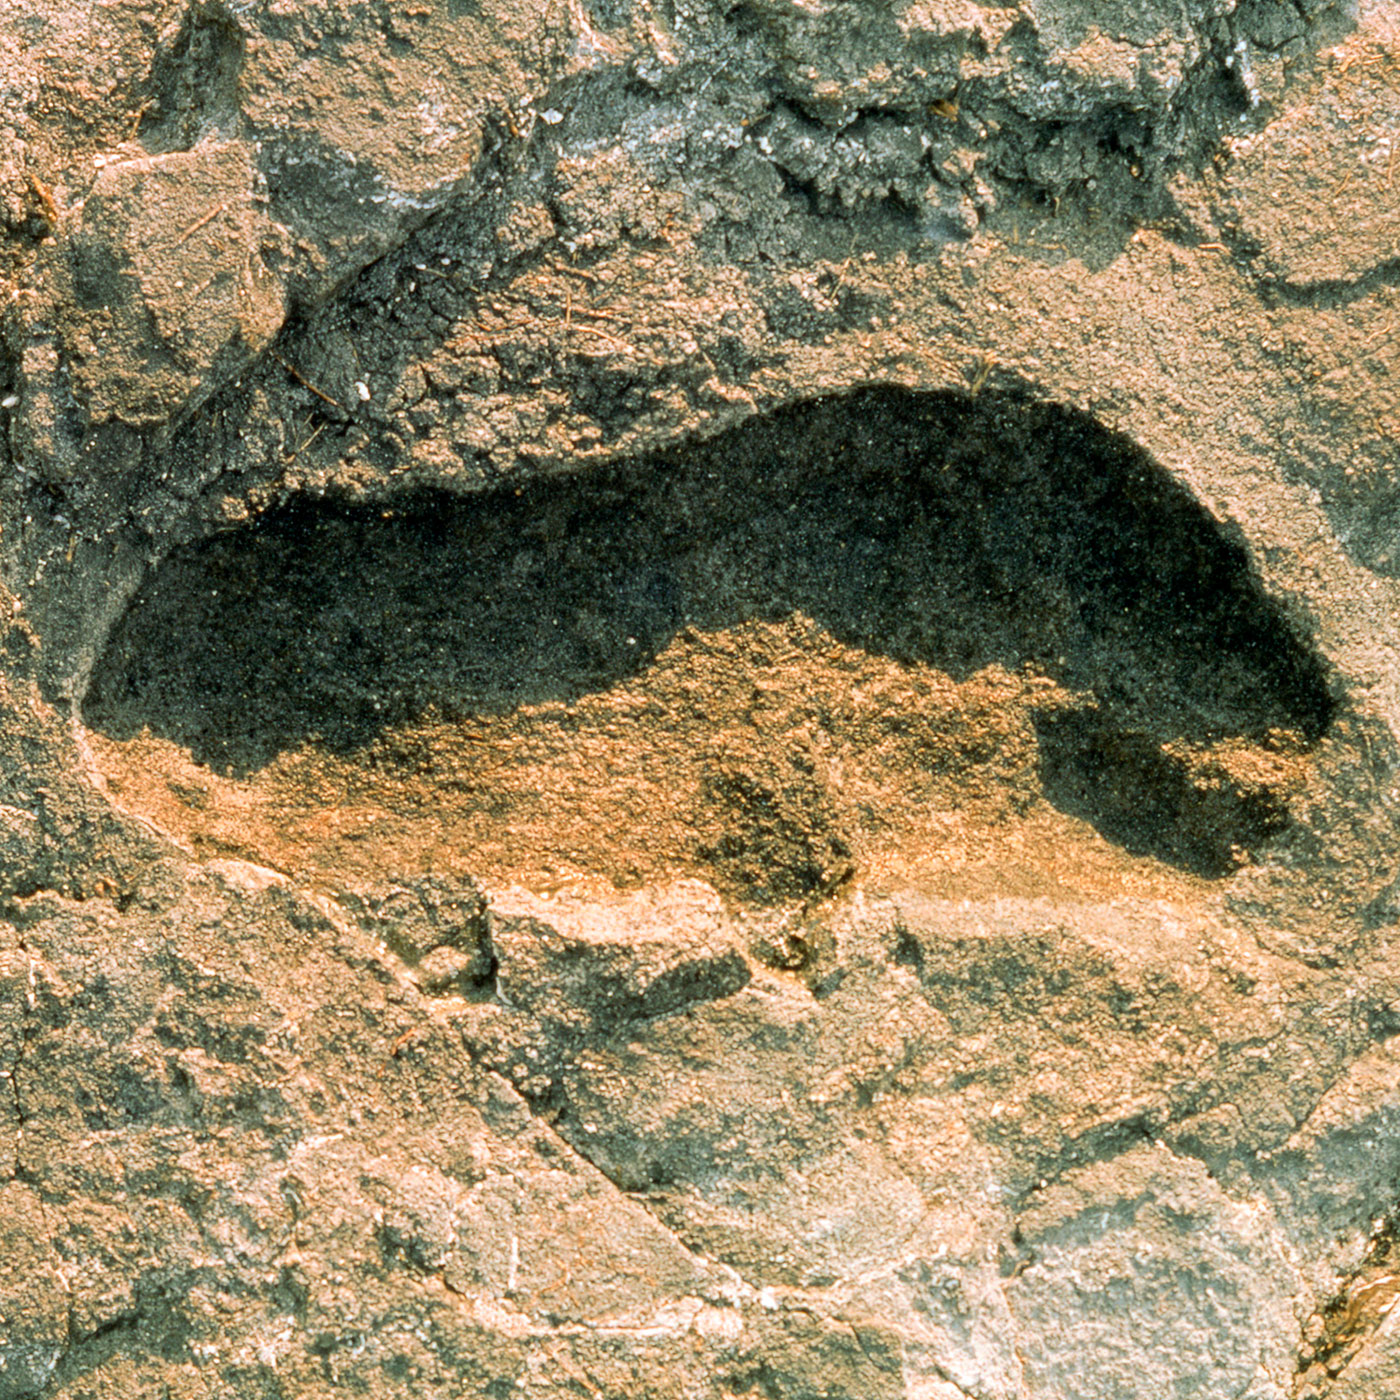 Where Our Human Ancestors Made an Impression